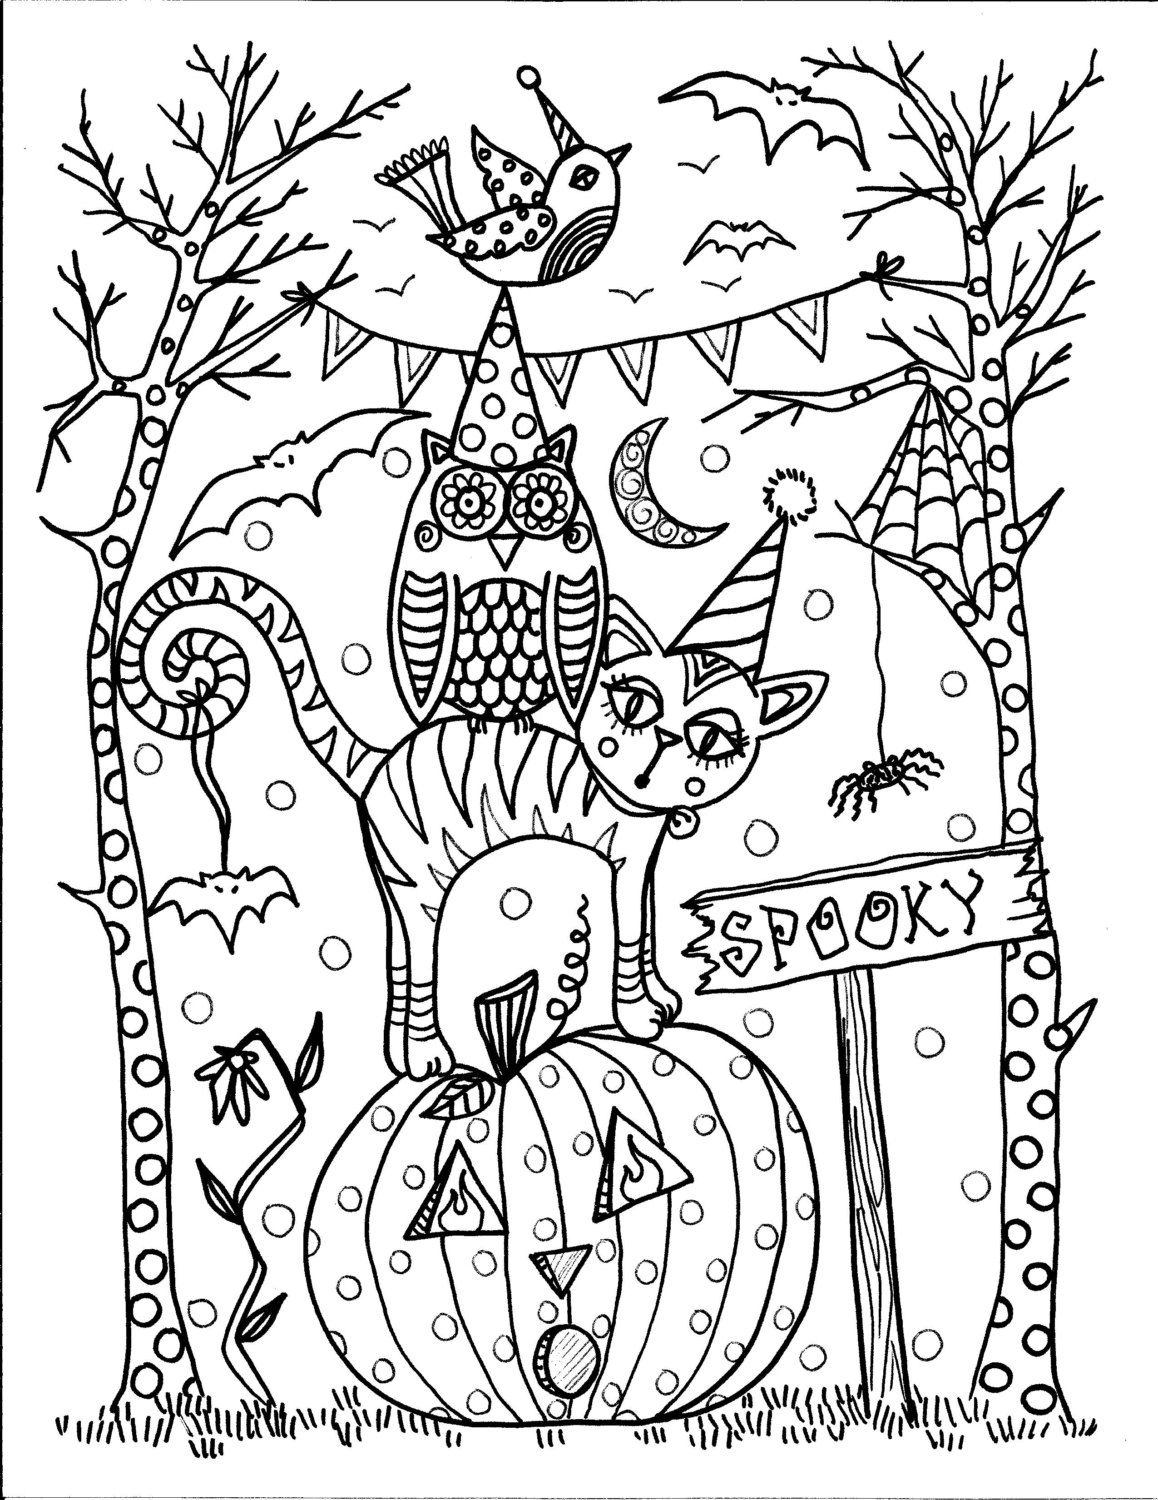 Instant download halloween coloring pages 5 for Halloween coloring pages for adults printables